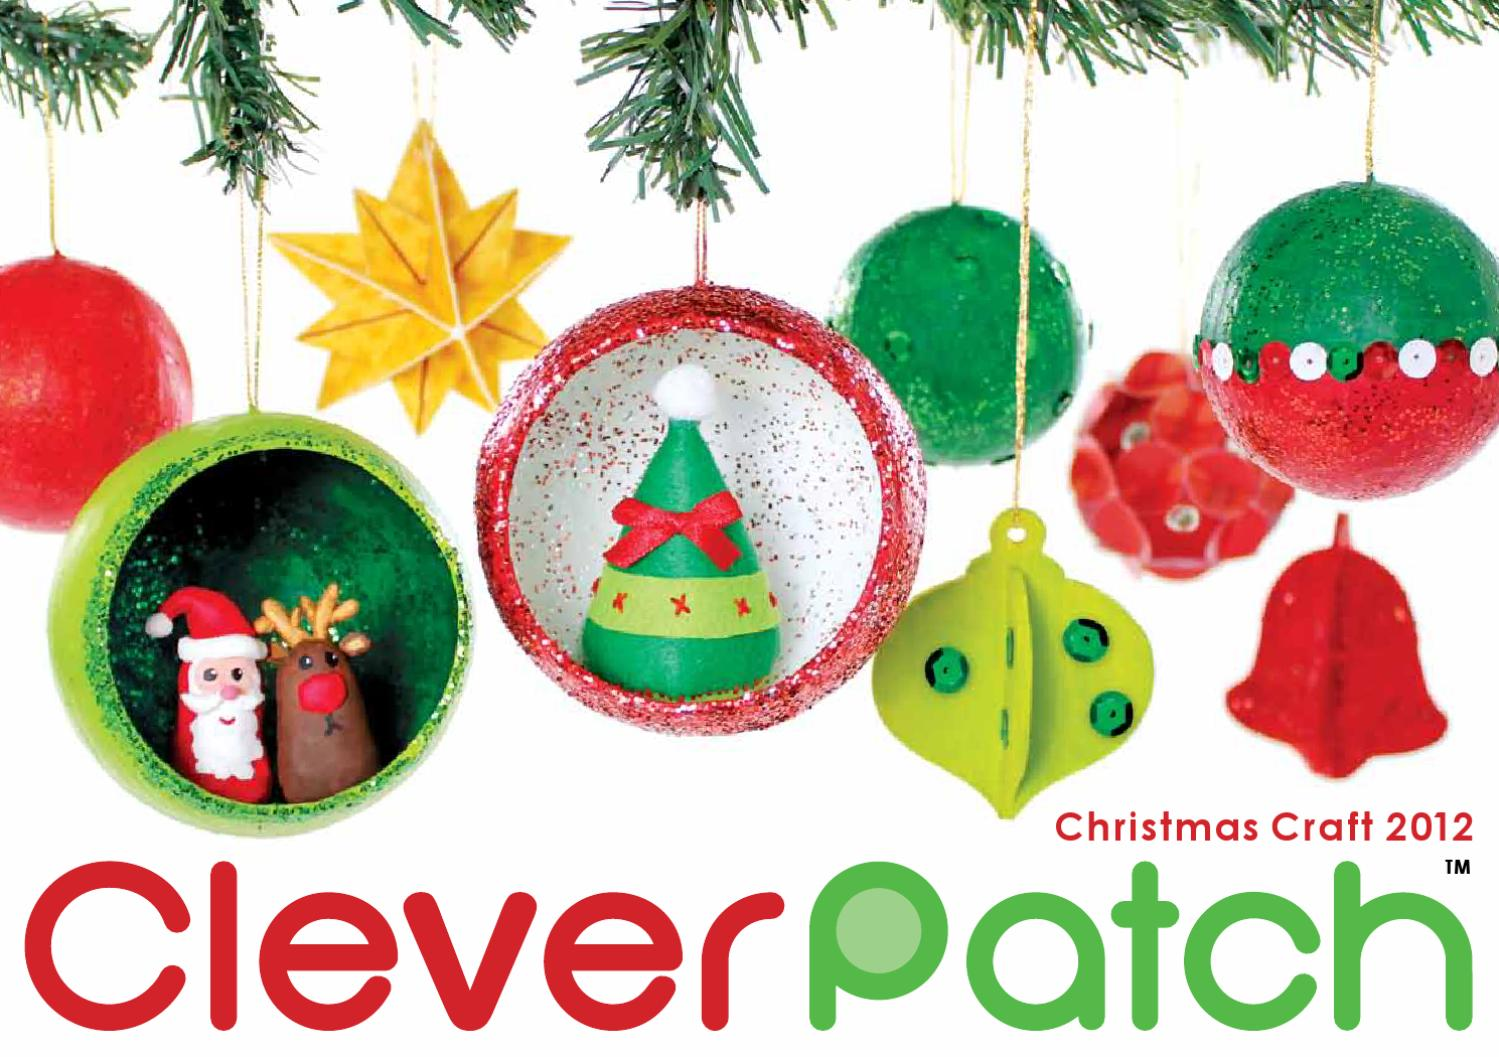 16x Christmas Xmas Greeting Cards /& Envelopes w Glitter Foil from 26*18cm